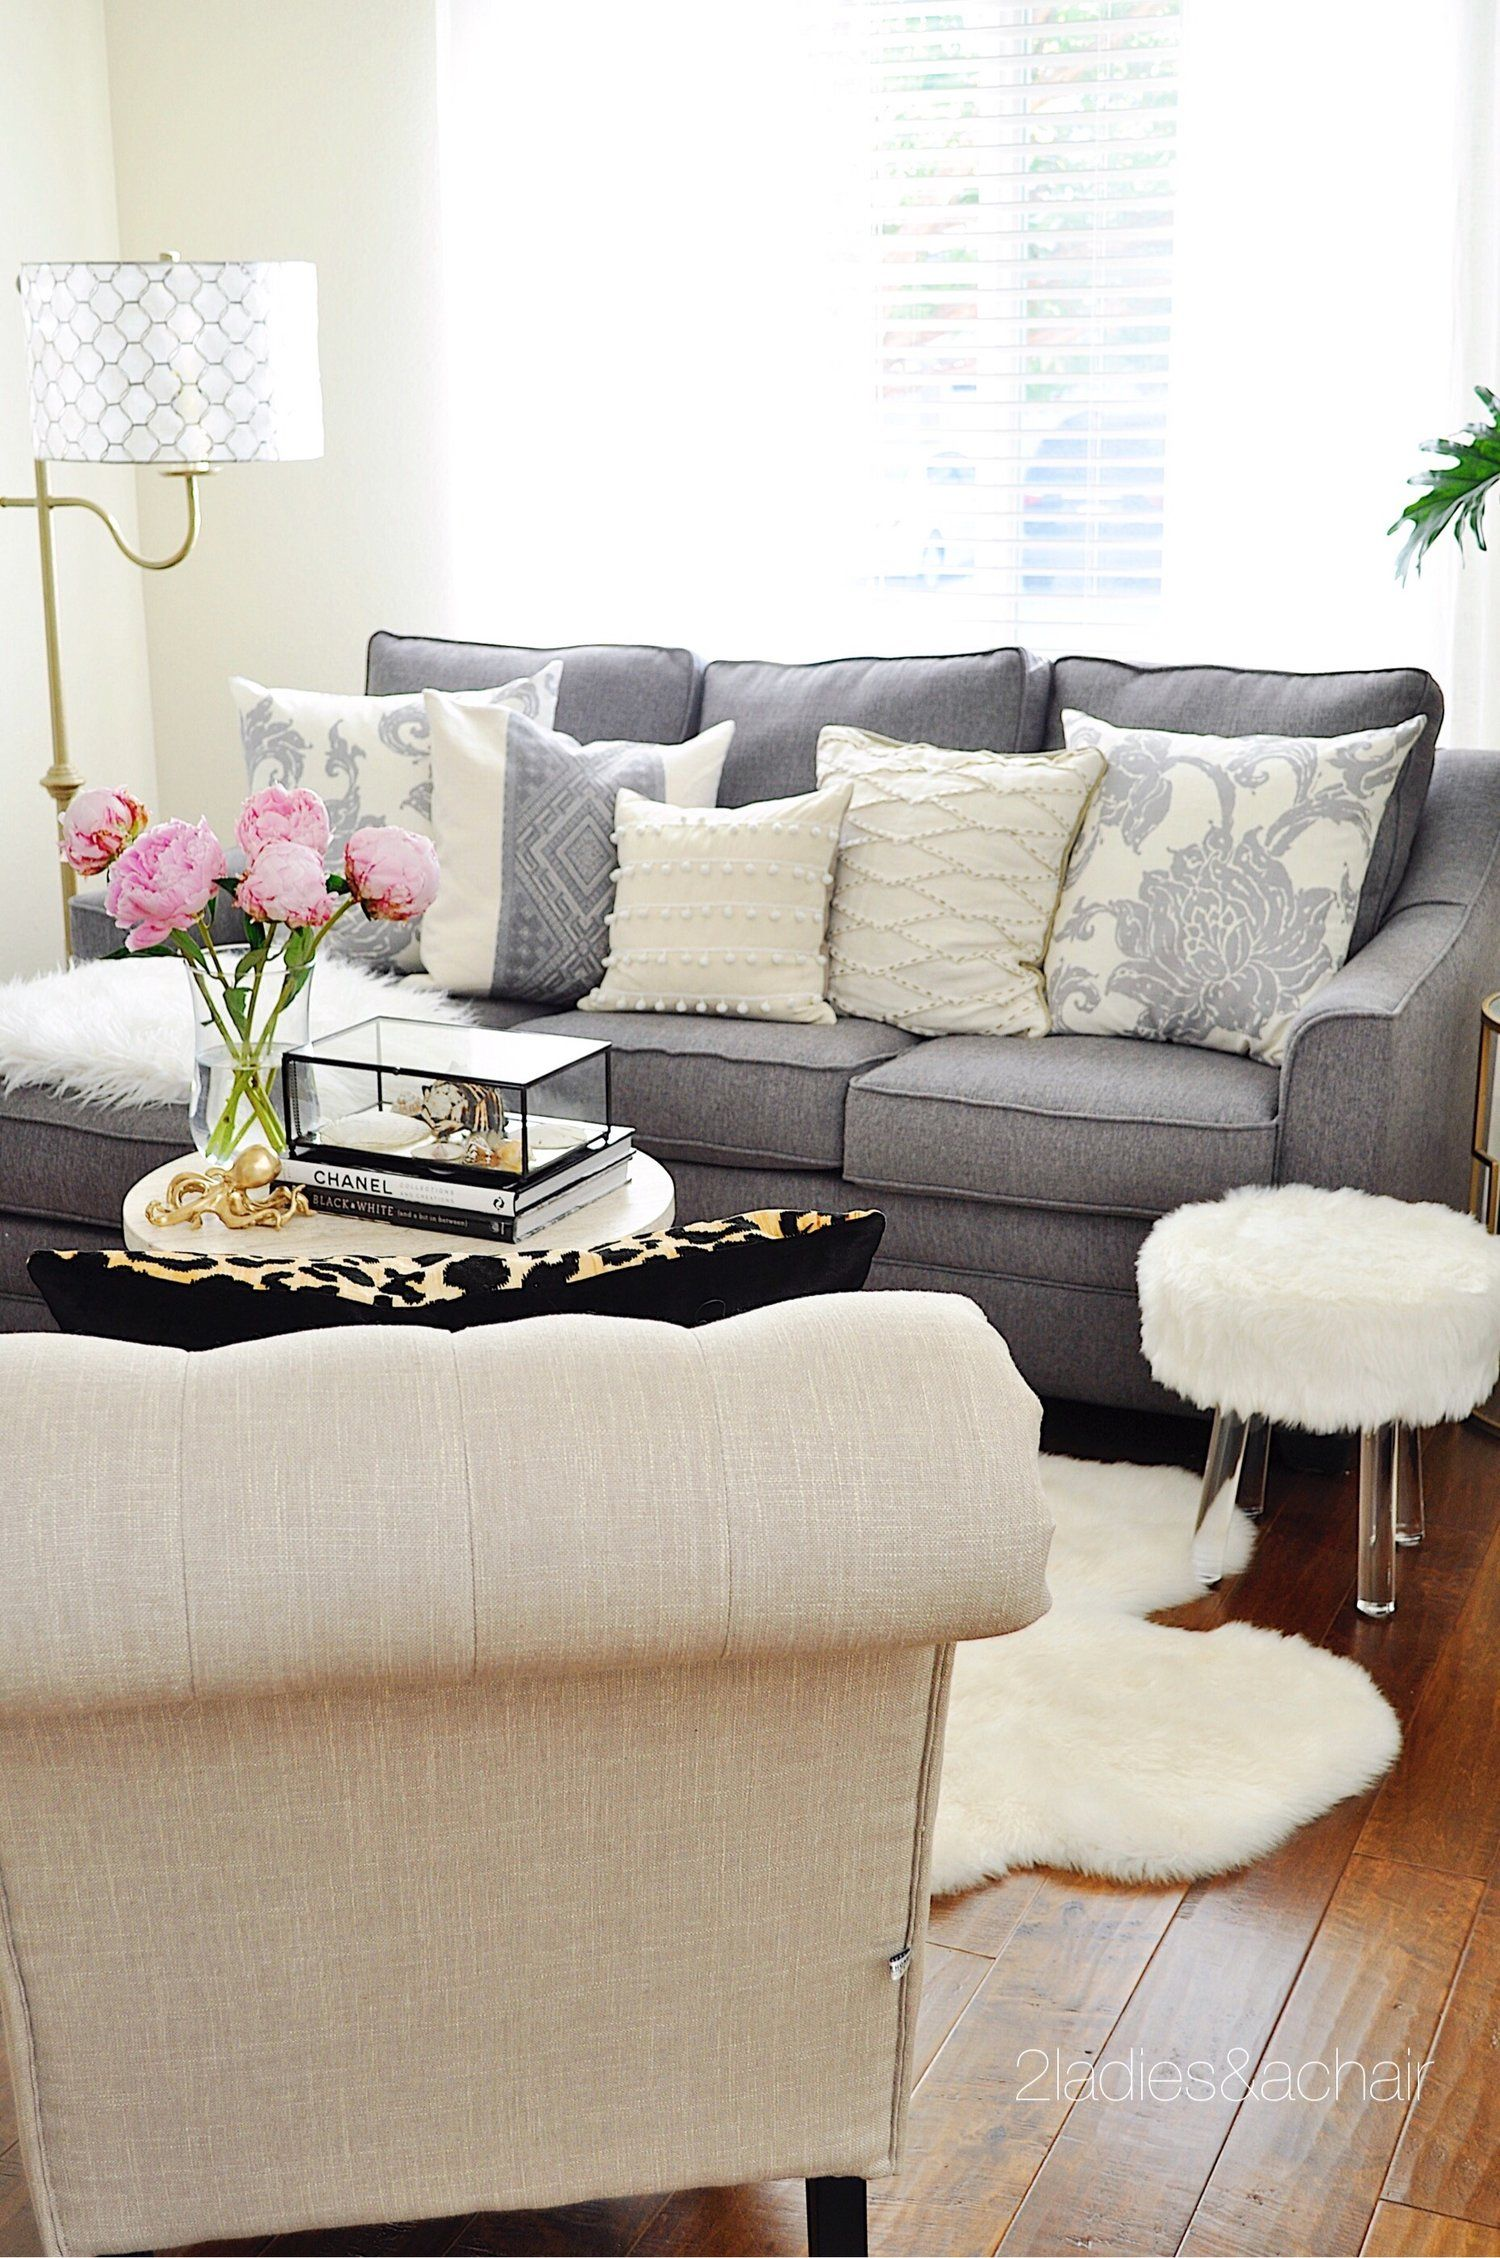 Summer Home Tour Adding Color To Your Home 2 Ladies A Chair Summer Living Room Home Living Room